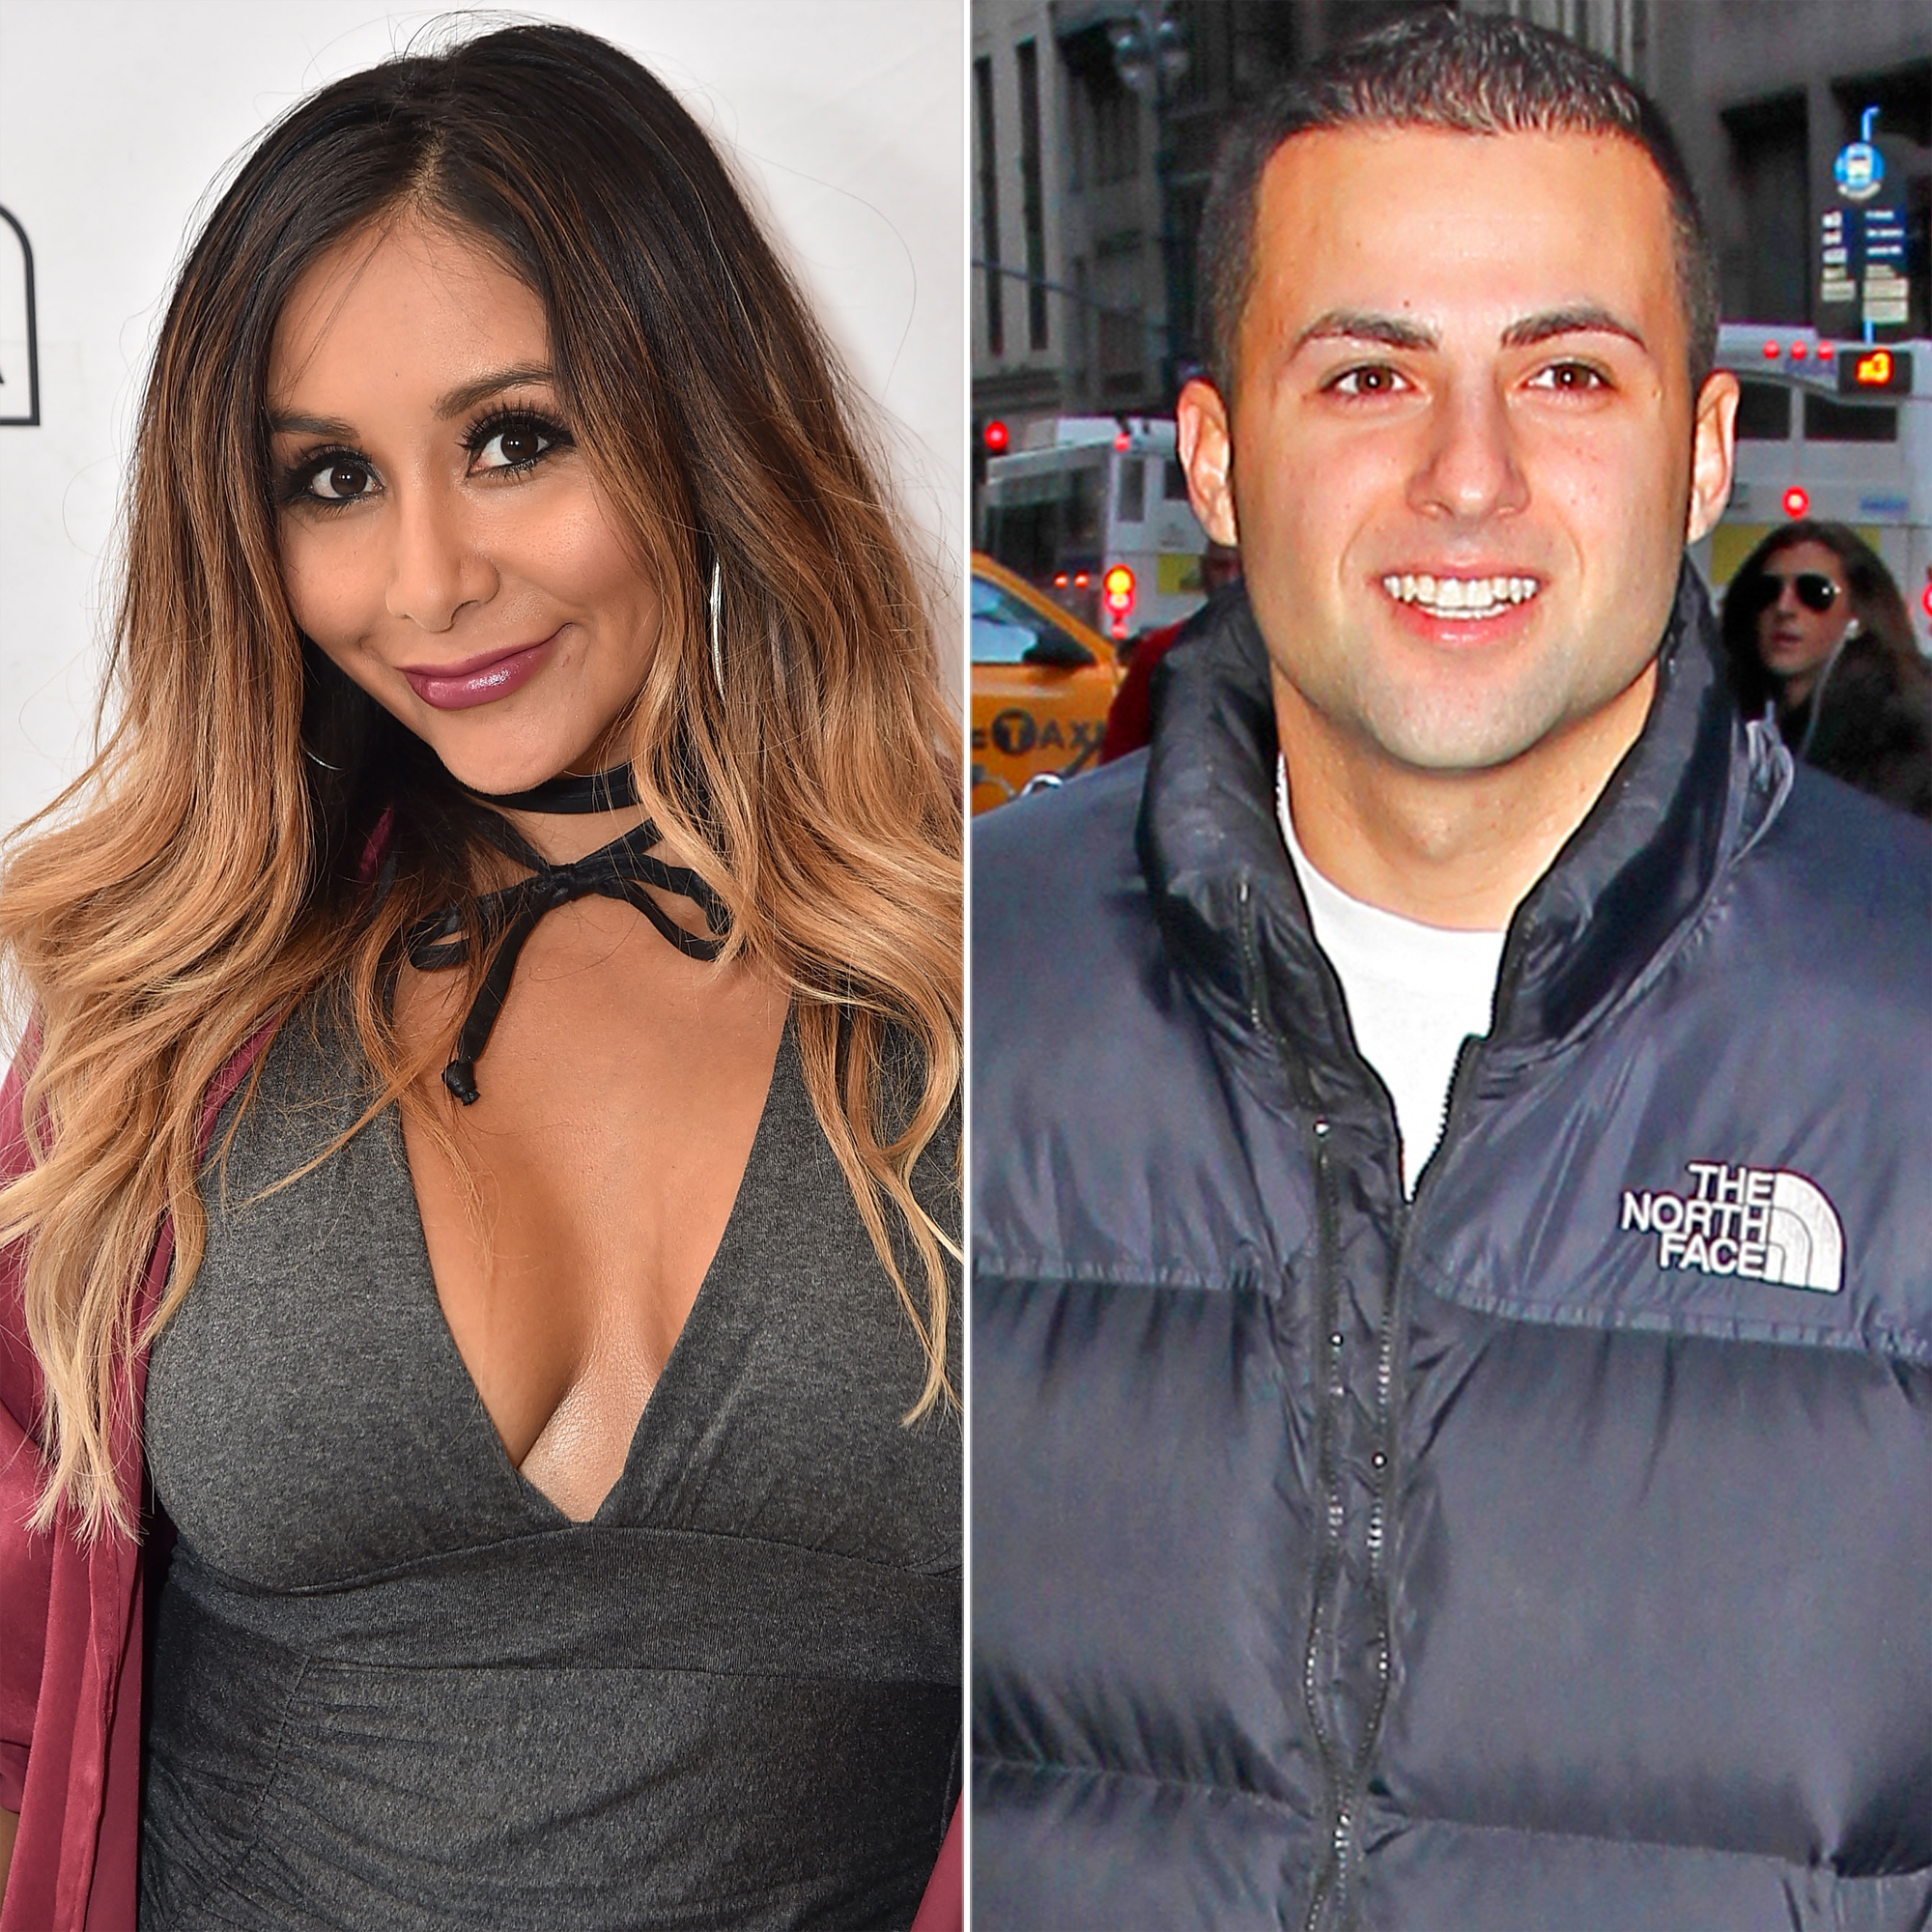 hot rebound romance - Snookin' for love no more! After the Jersey Shore star accused ex Emilio Masella of cheating, she found love again at Karma nightclub in August.